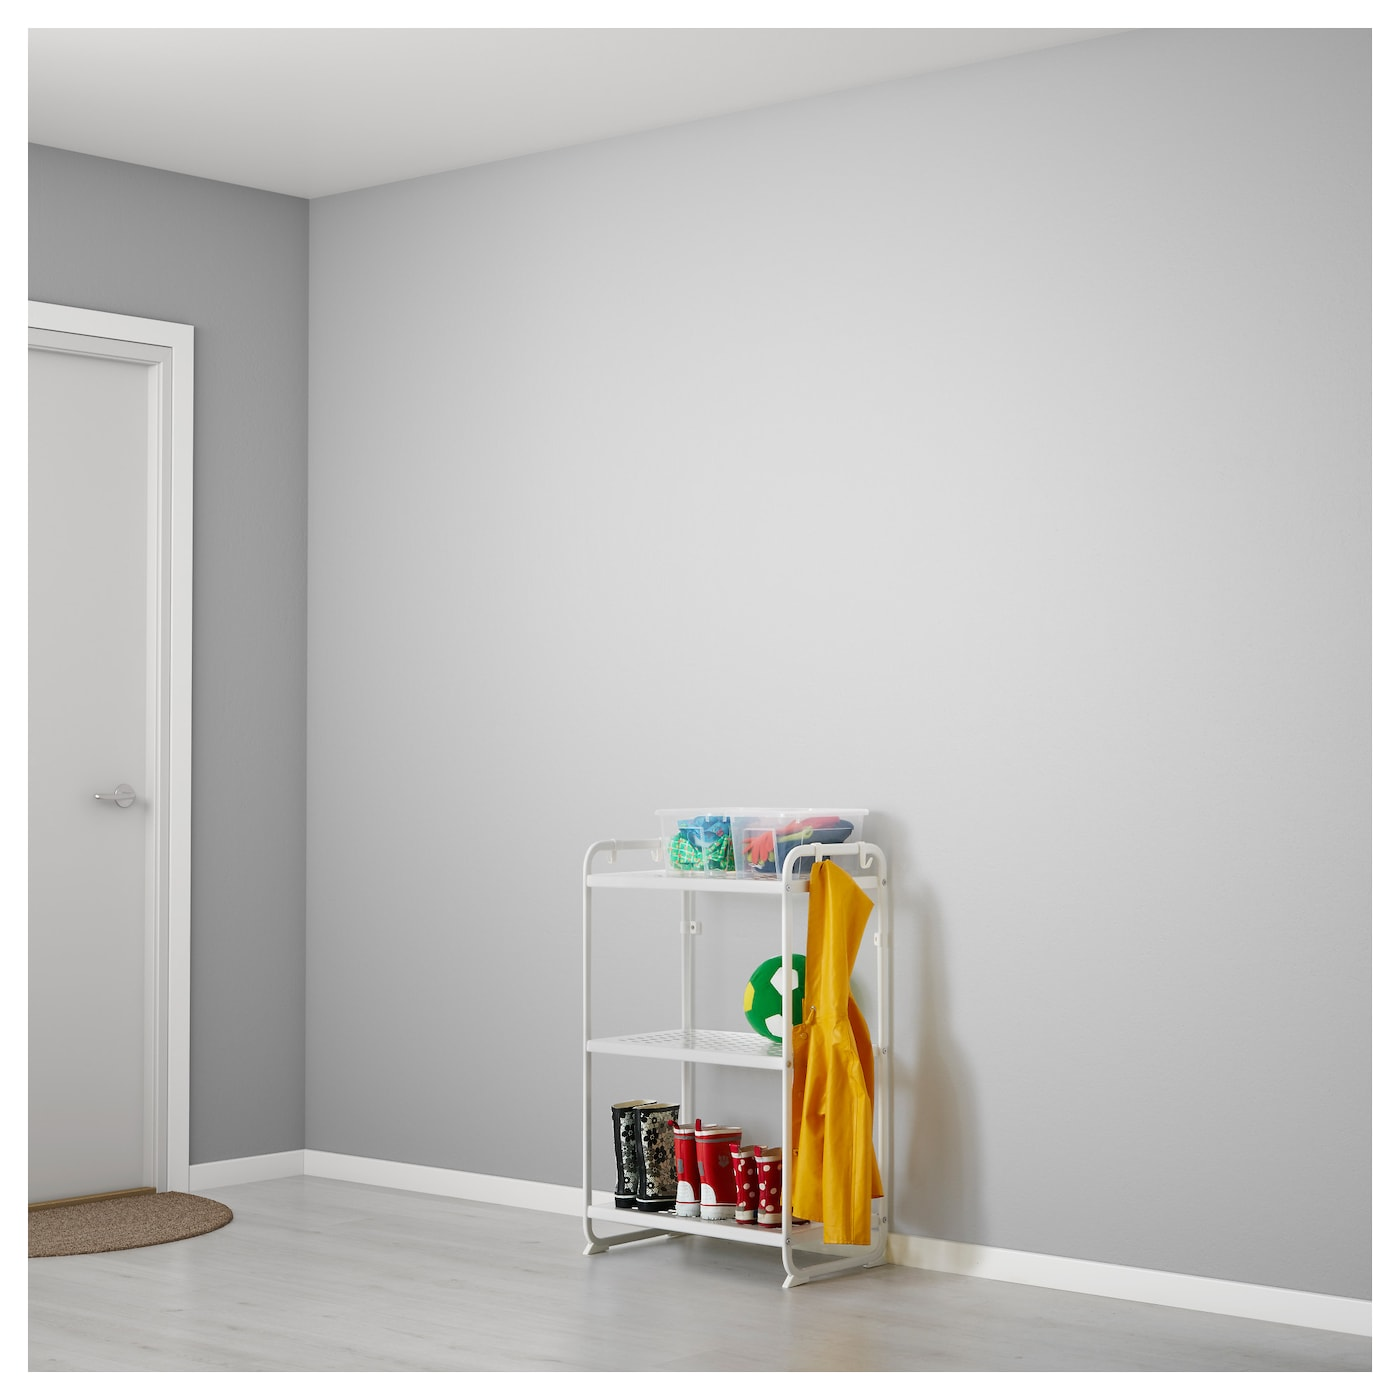 Shelving units for bathrooms - Ikea Mulig Shelving Unit Can Also Be Used In Bathrooms And Other Damp Areas Indoors